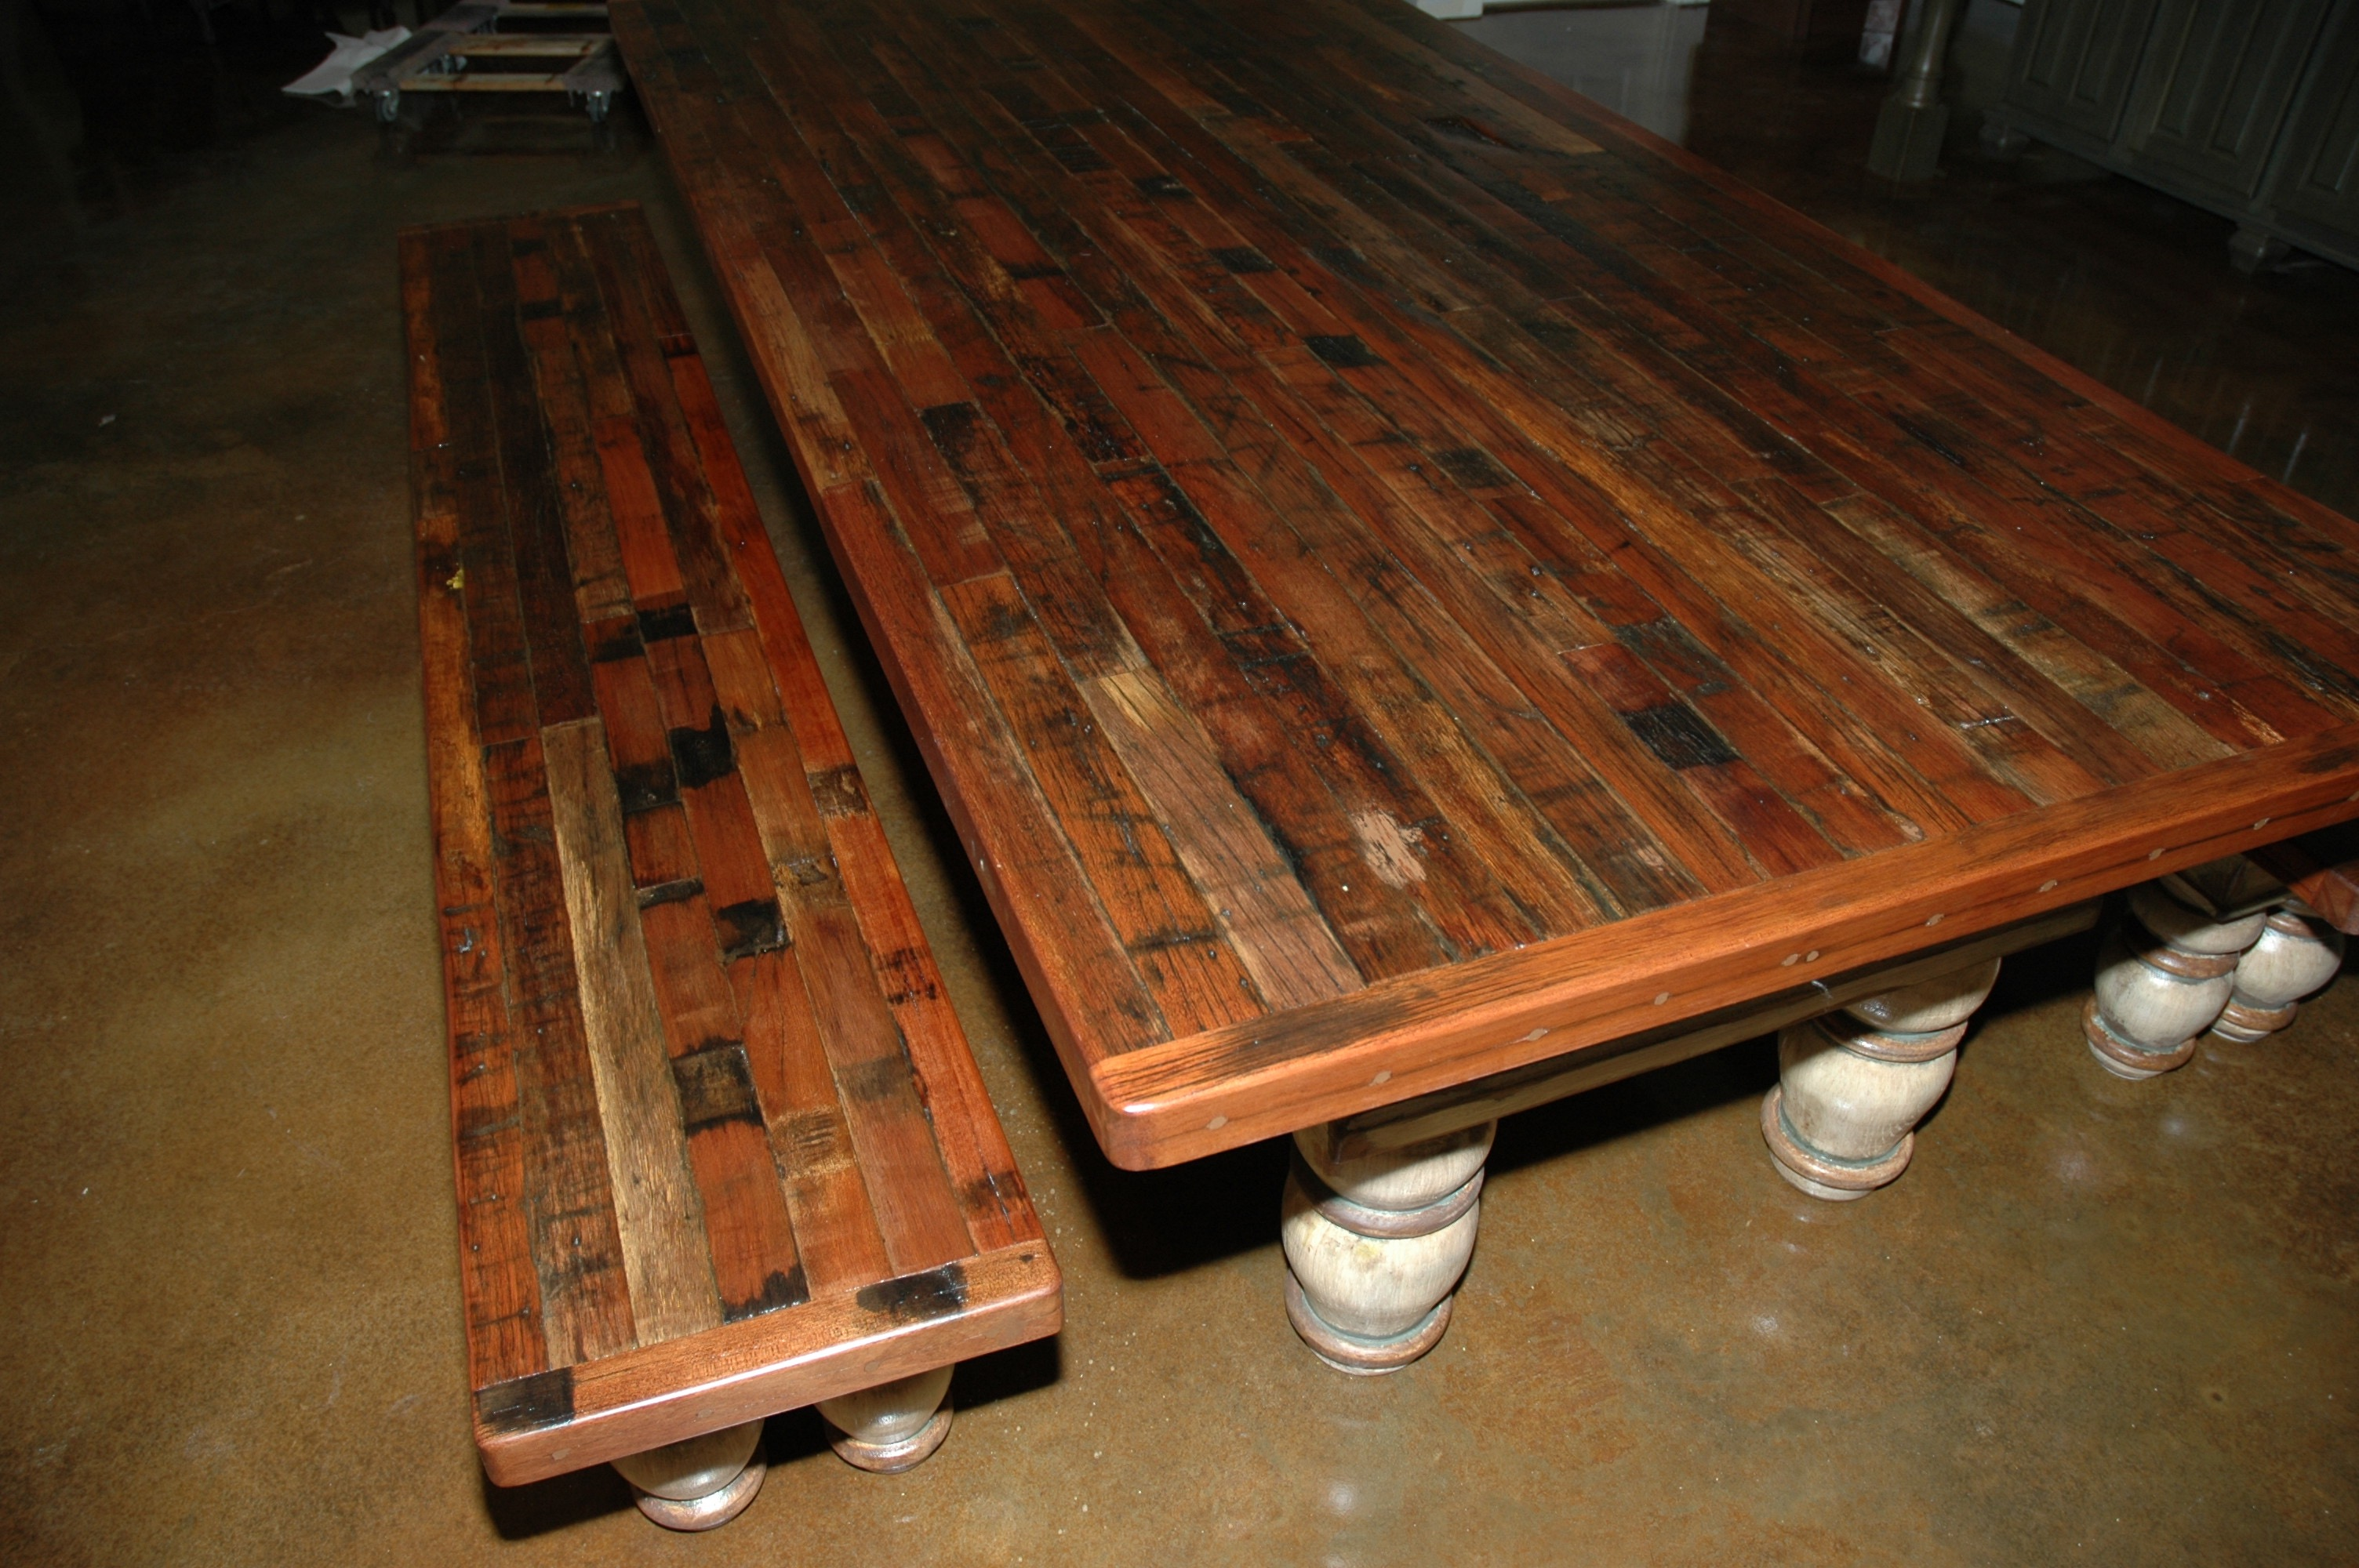 Mahogany-Reclaimed from Railroad Car